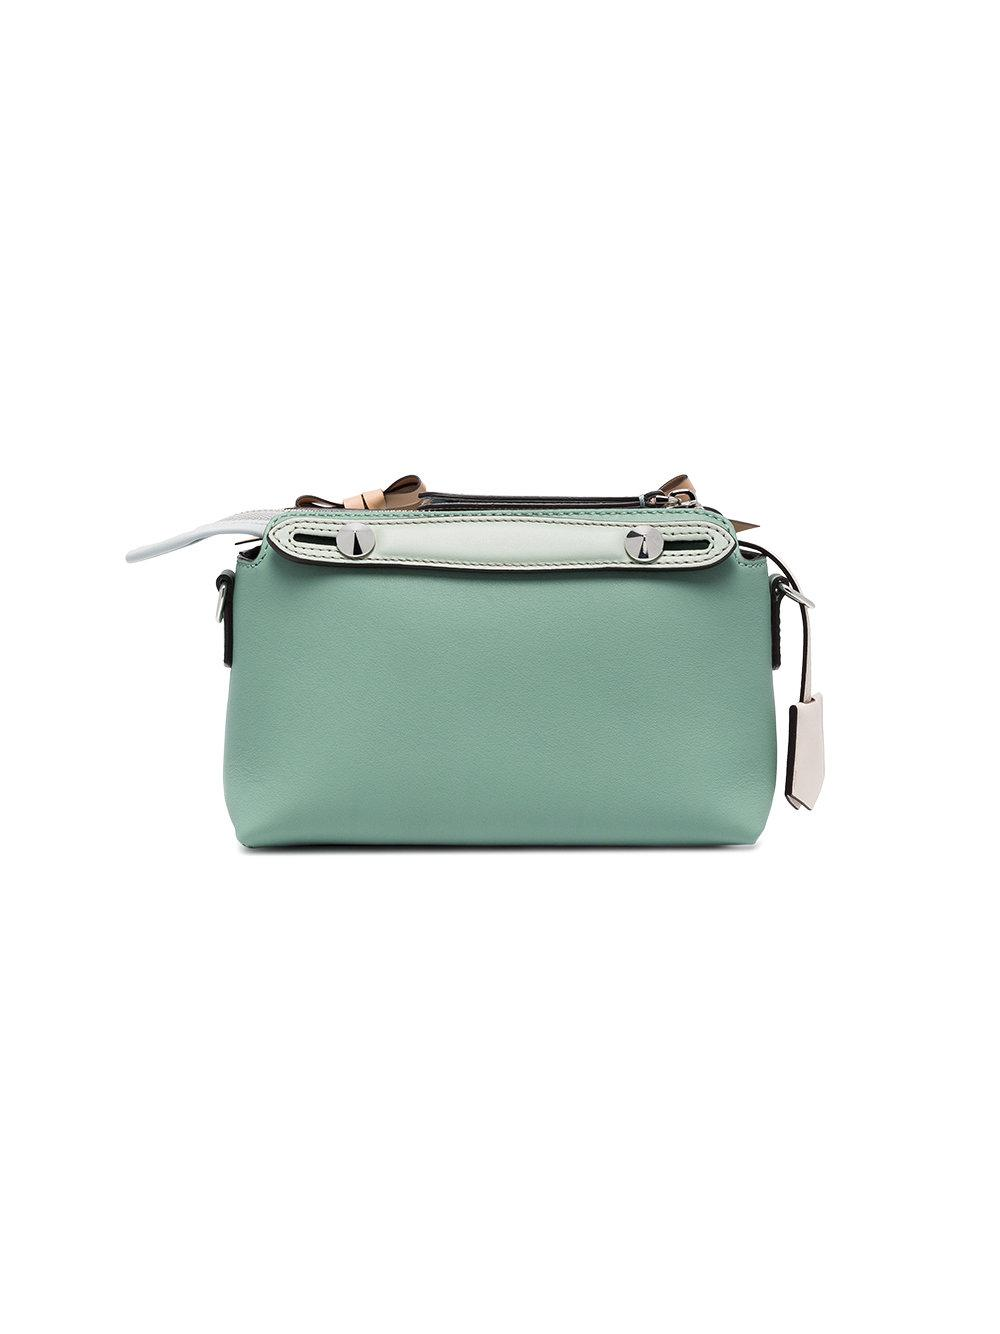 650a17617621 Fendi Green By The Way Mini Leather Bag in Green - Lyst